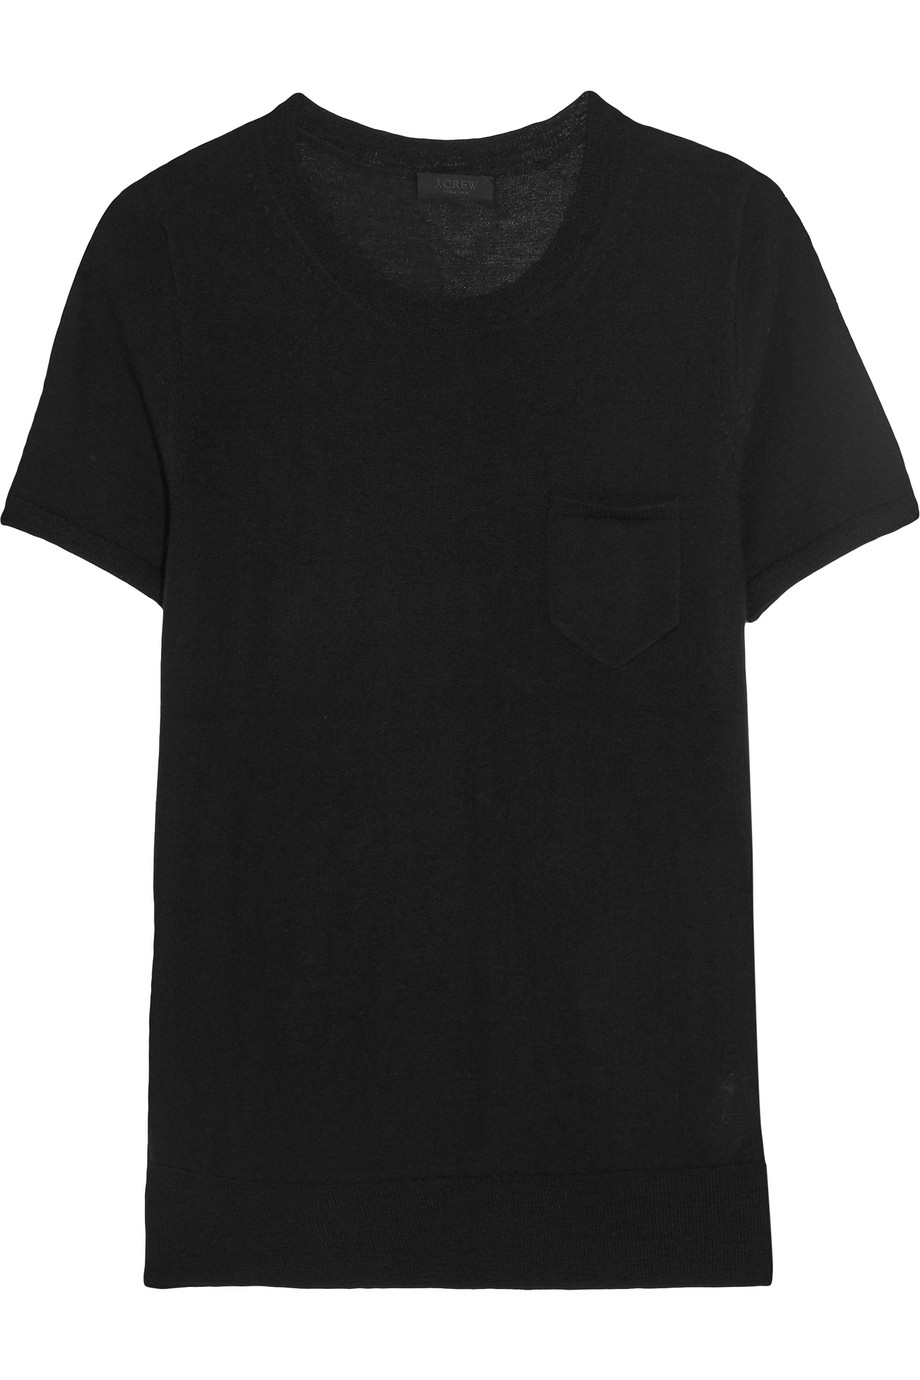 J.Crew Collection Cashmere T-Shirt, Black, Women's